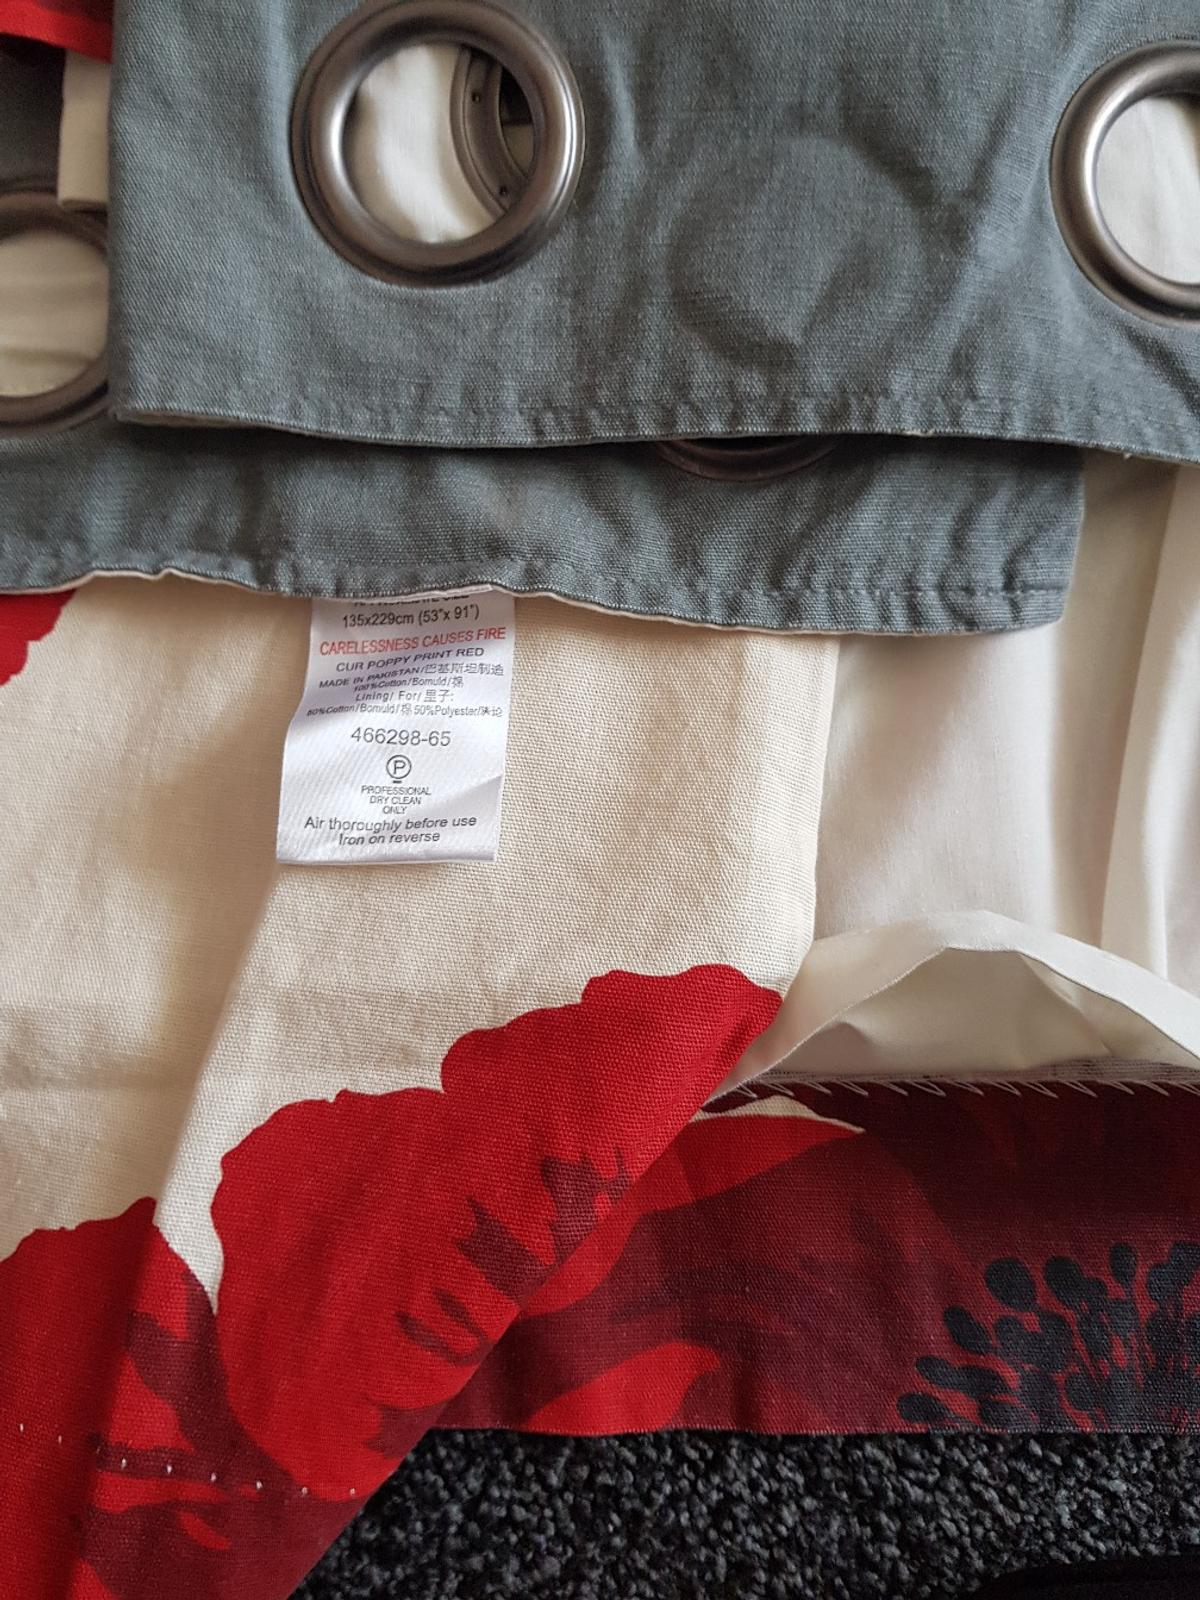 from next they are lined really good condition comes from a smoke and pet free home